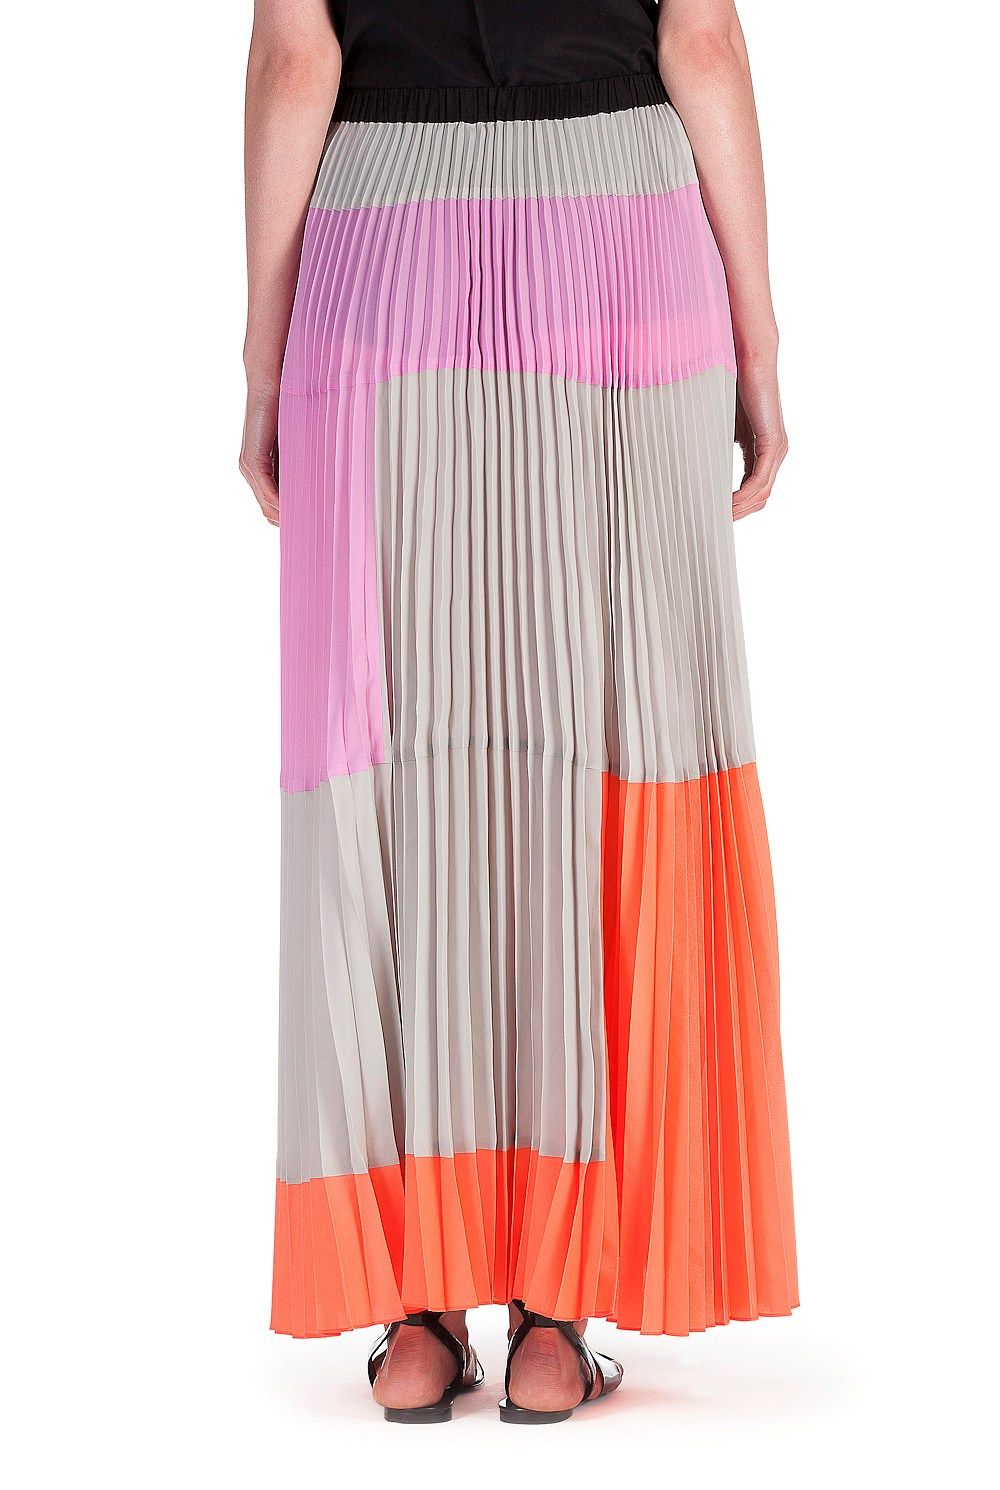 51ef21d6ba Country Road - New In - Panelled Pleat Maxi Skirt | Threads | Skirts ...